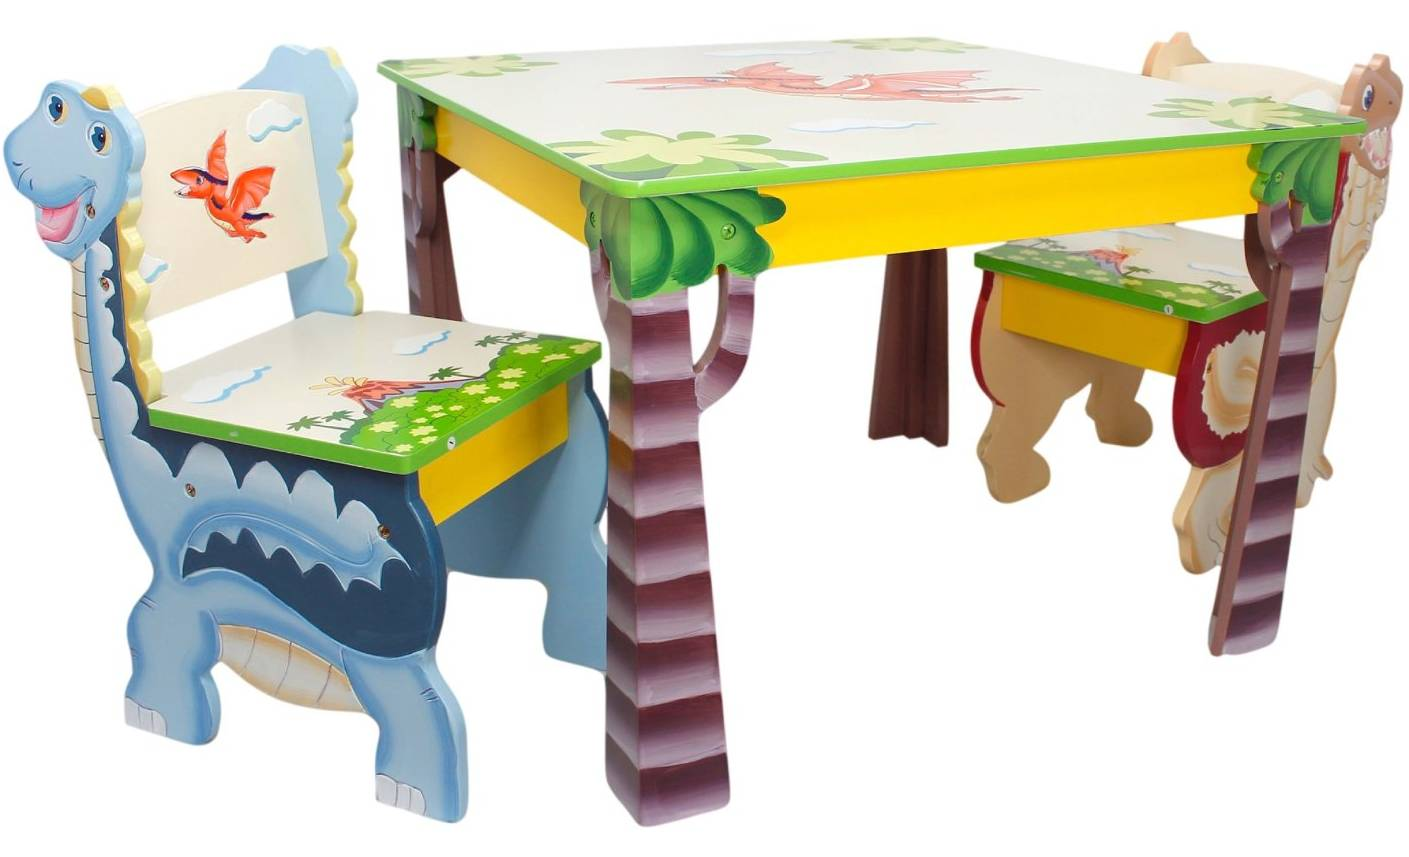 ... Space For Kids To Do Arts And Crafts, Color Or Have A Snack. Non Toxic  Paint Makes For A Safe Environment For Little Hands To Work, Play And Eat.